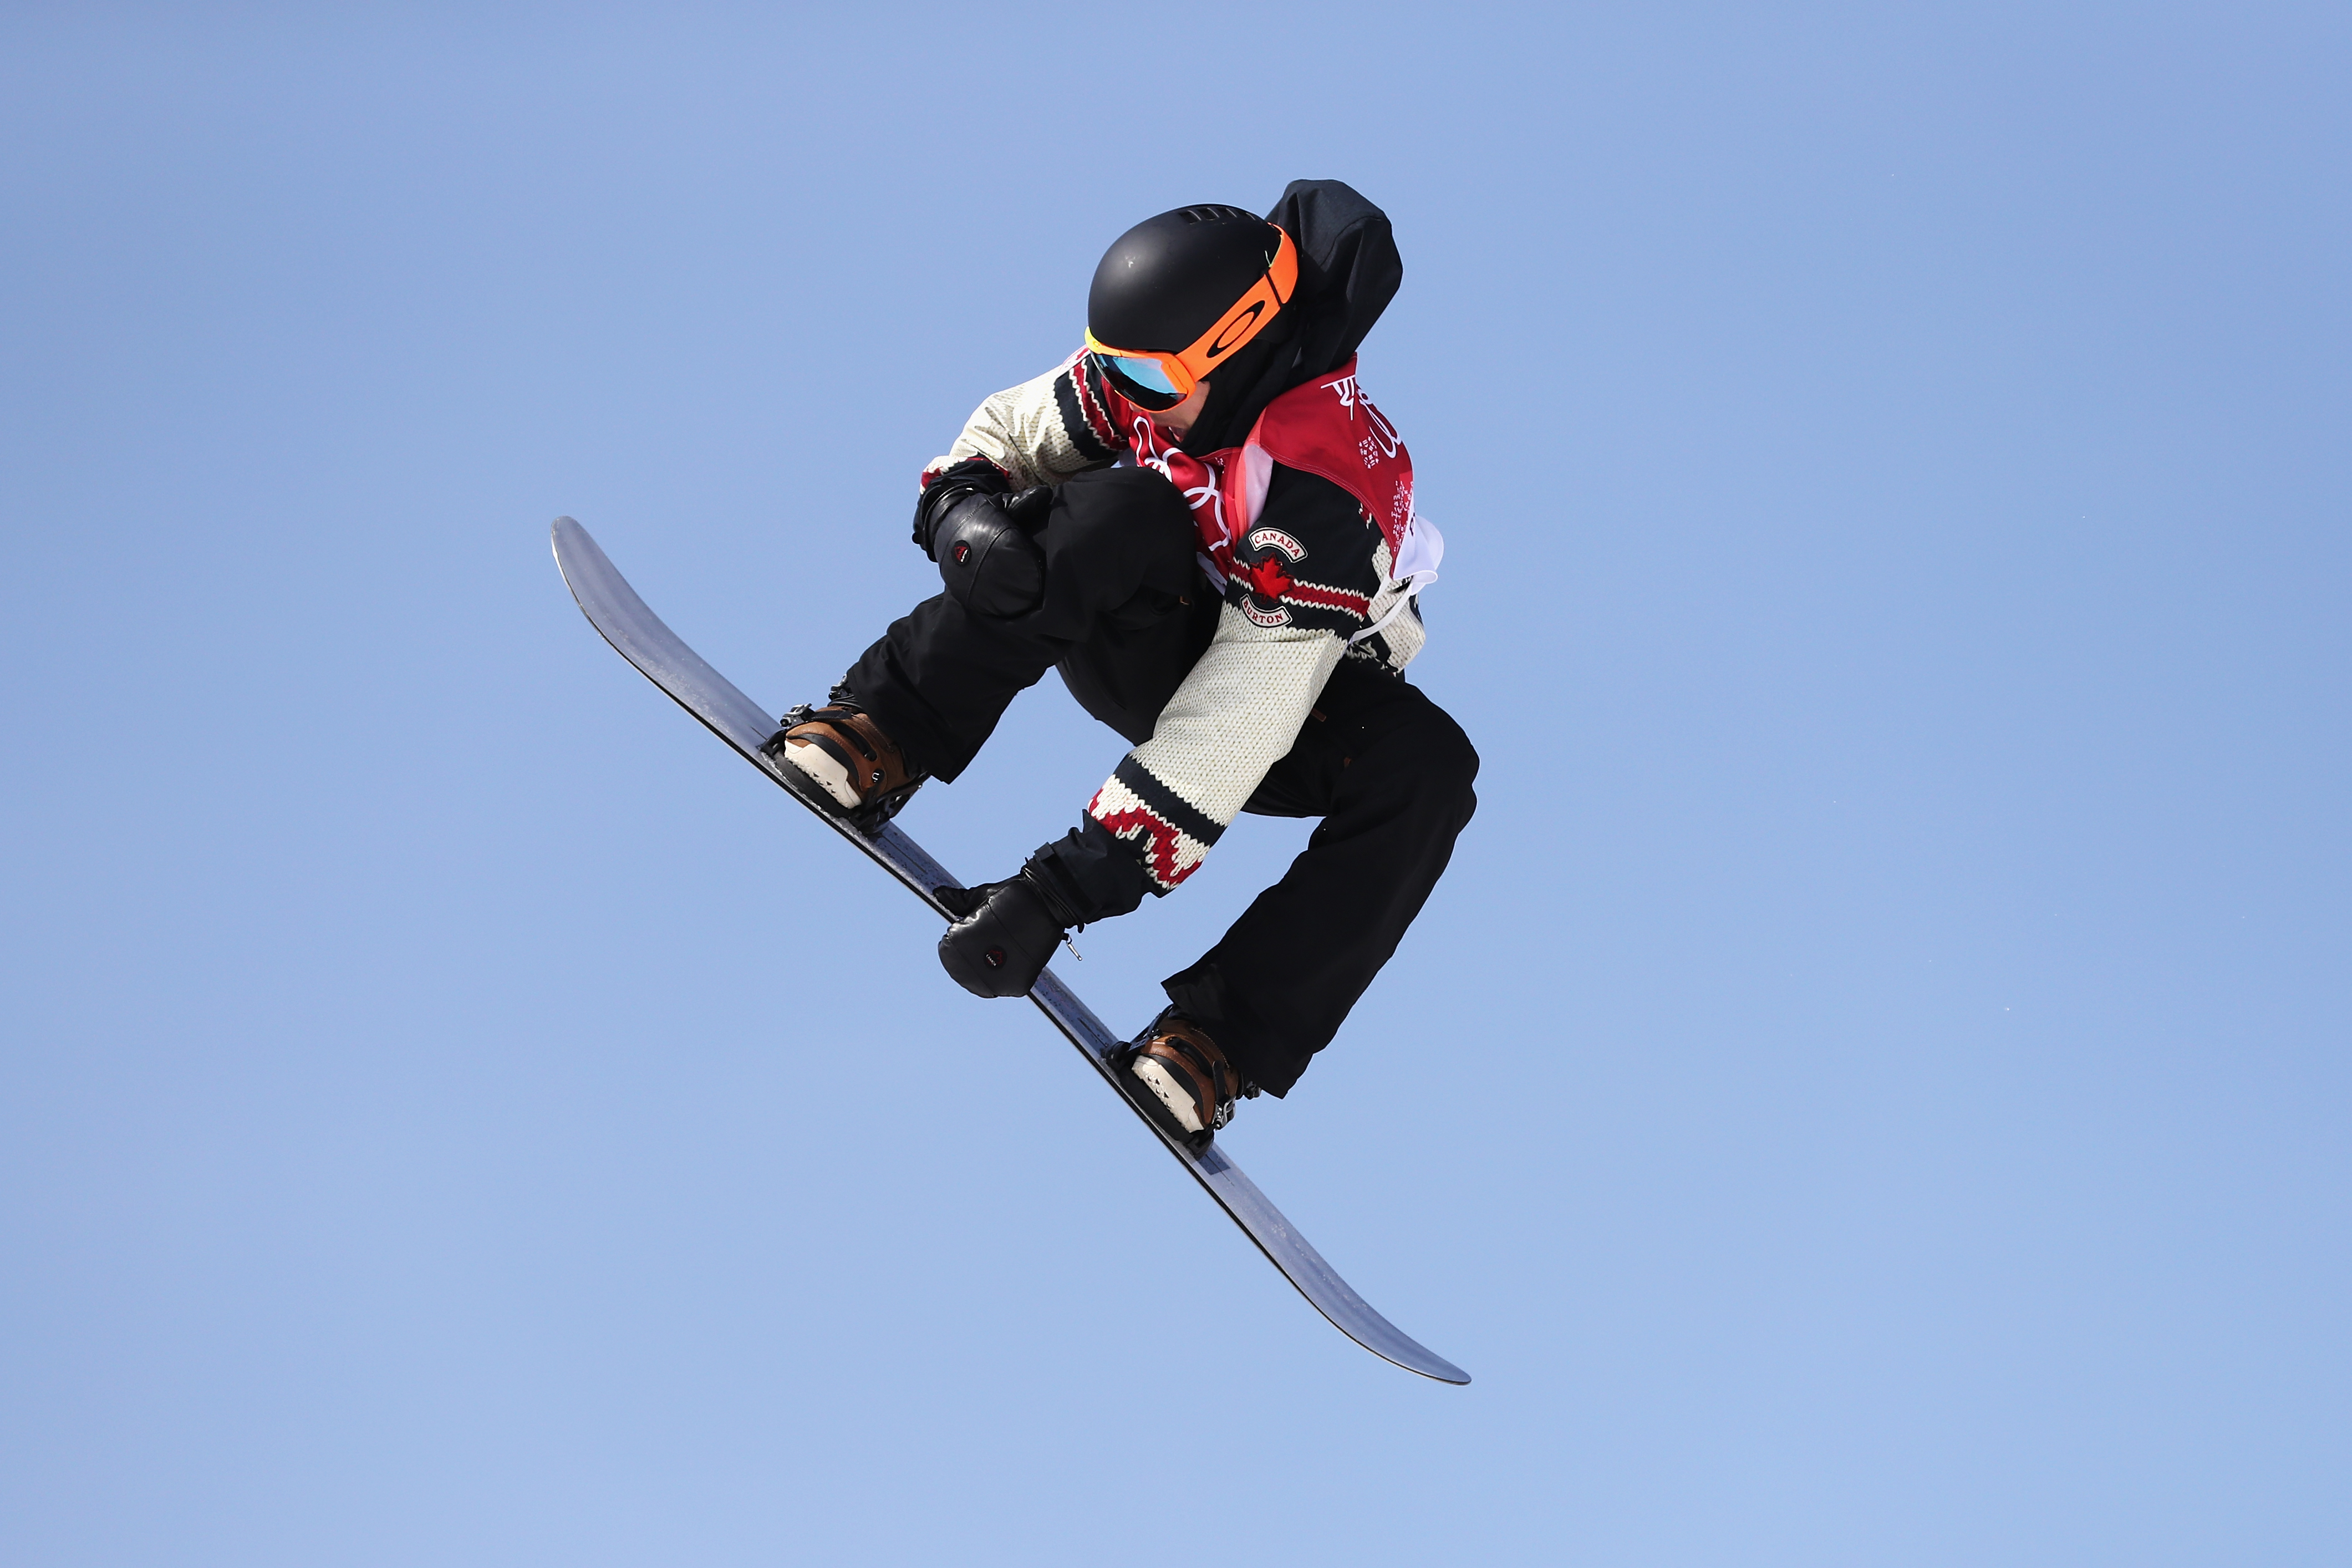 Mark McMorris of Canada competes during the Men's Big Air Qualification Heat 2 on day 12 of the PyeongChang 2018 Winter Olympic Games at Alpensia Ski Jumping Centre on February 21, 2018 in Pyeongchang-gun, South Korea.